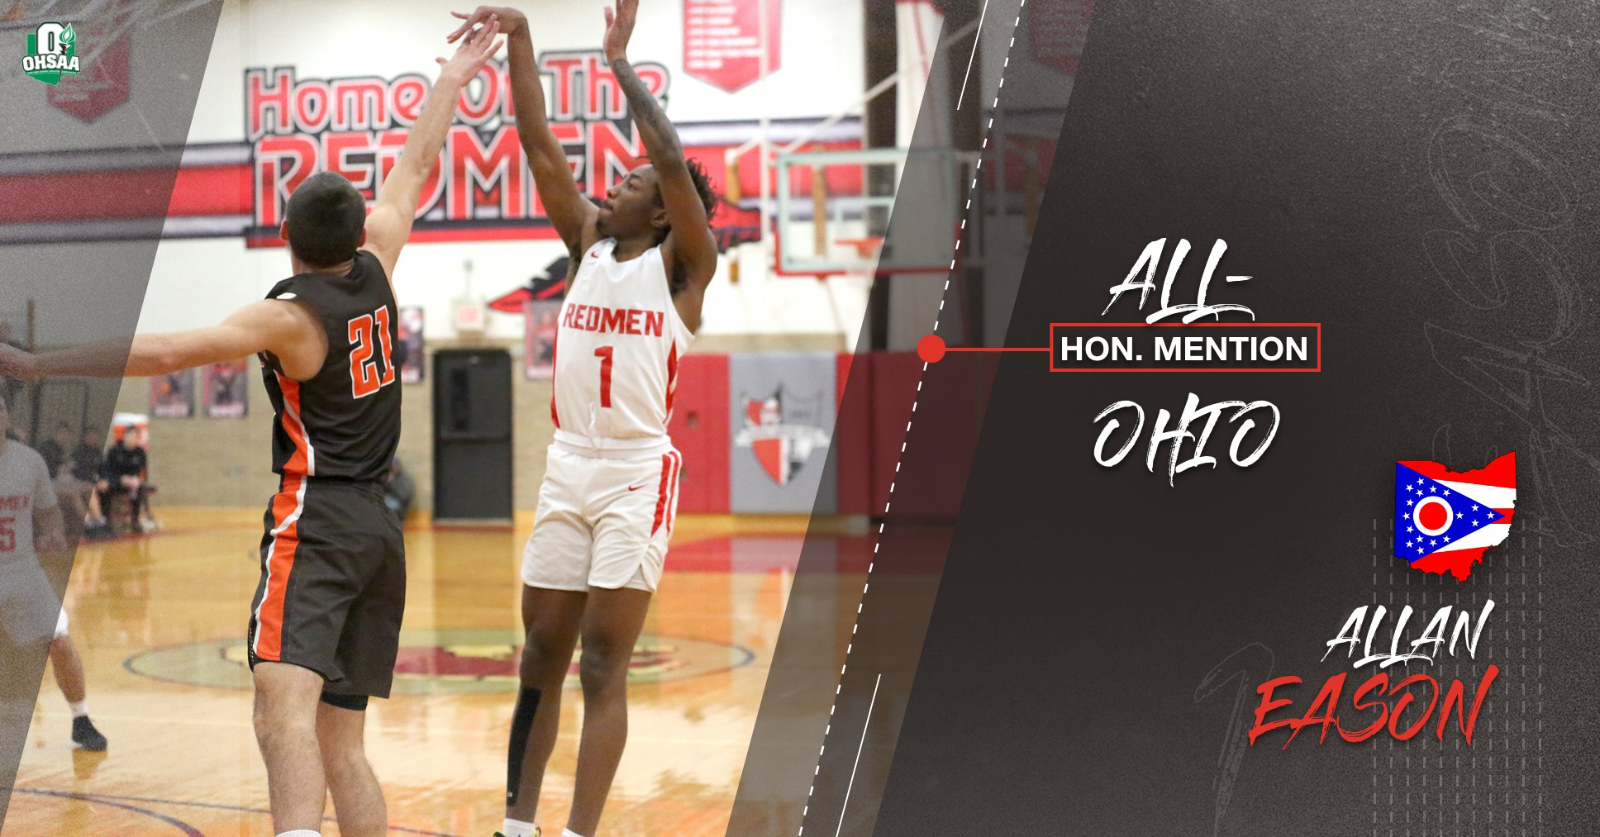 Congratulations to Parma's Allan Eason for Being Named Honorable Mention All-Ohio